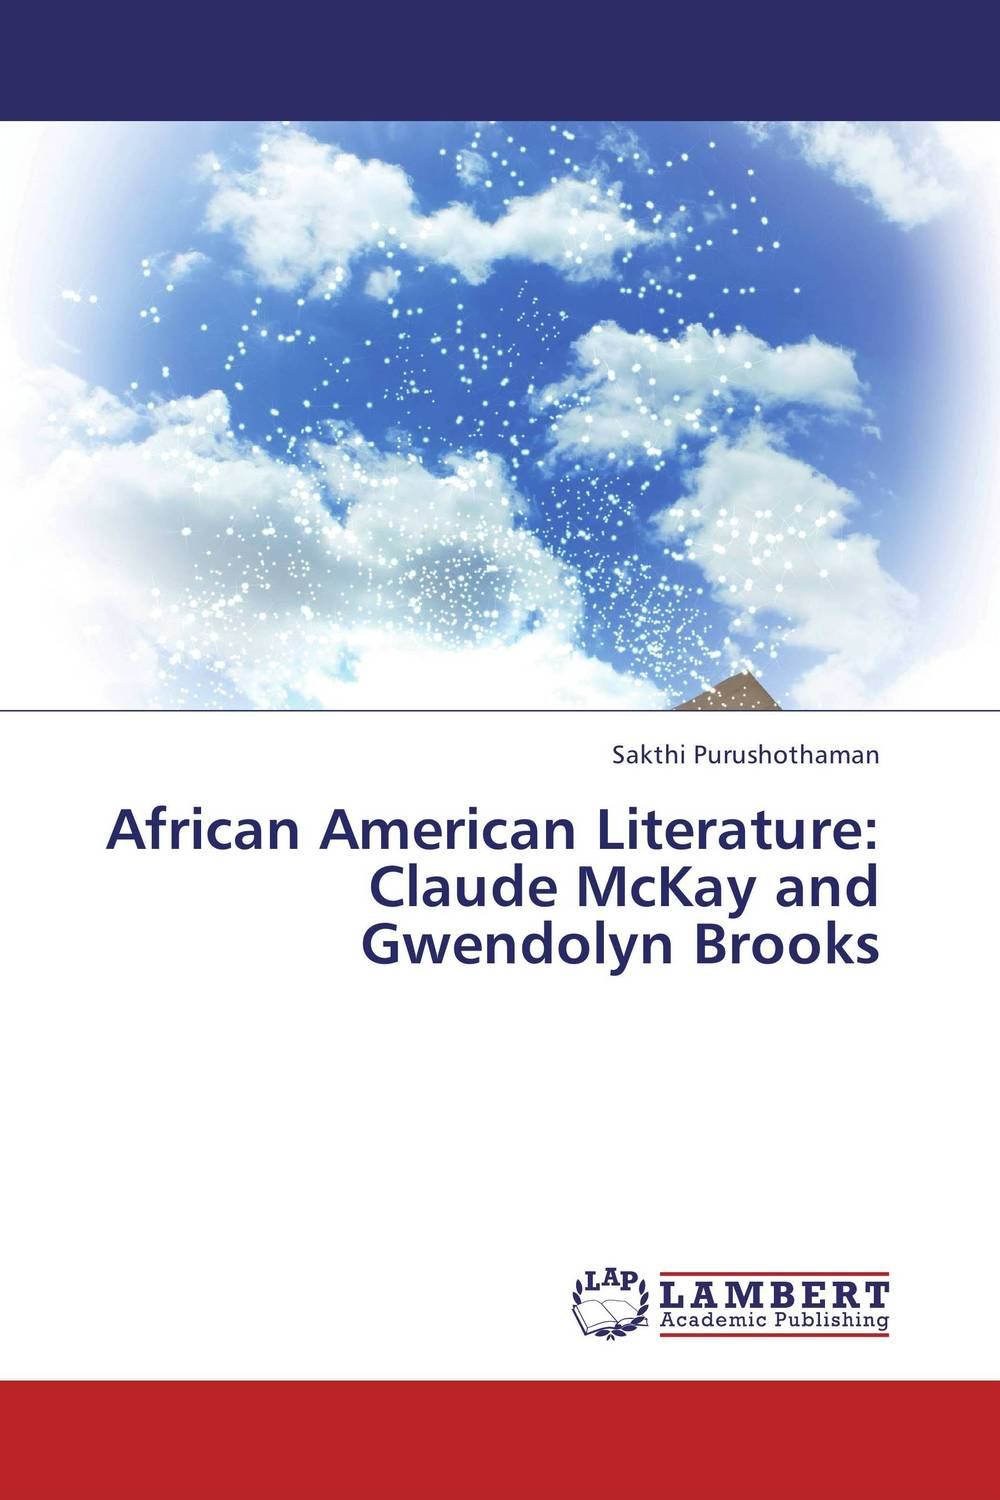 African American Literature: Claude McKay and Gwendolyn Brooks bryson b made in america an informal history of american english